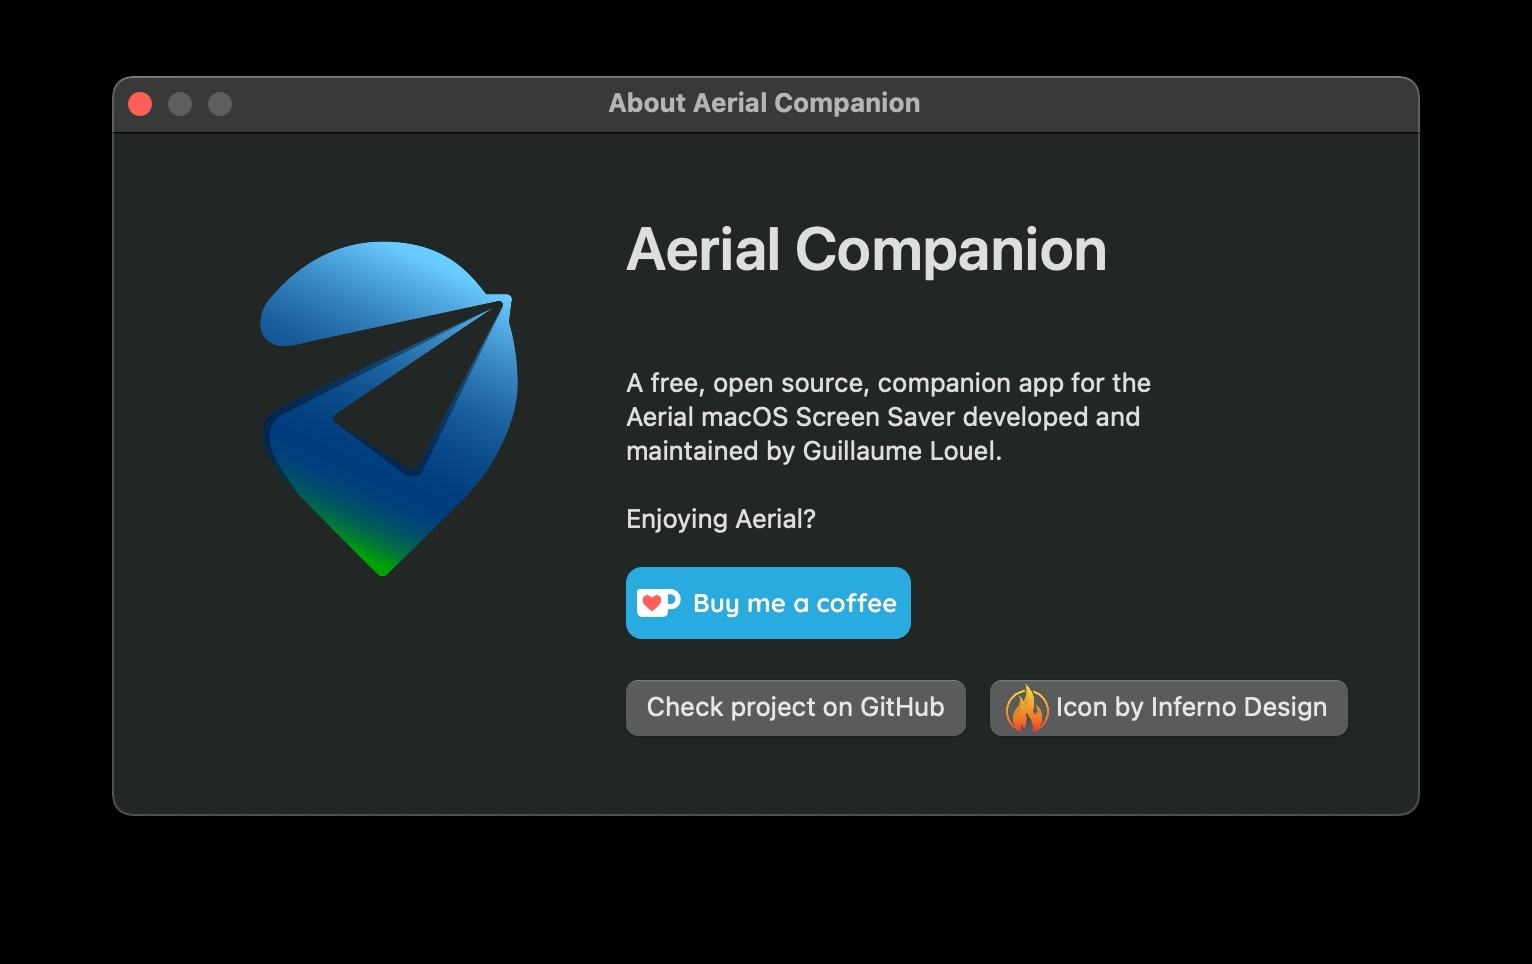 About Aerial Companion